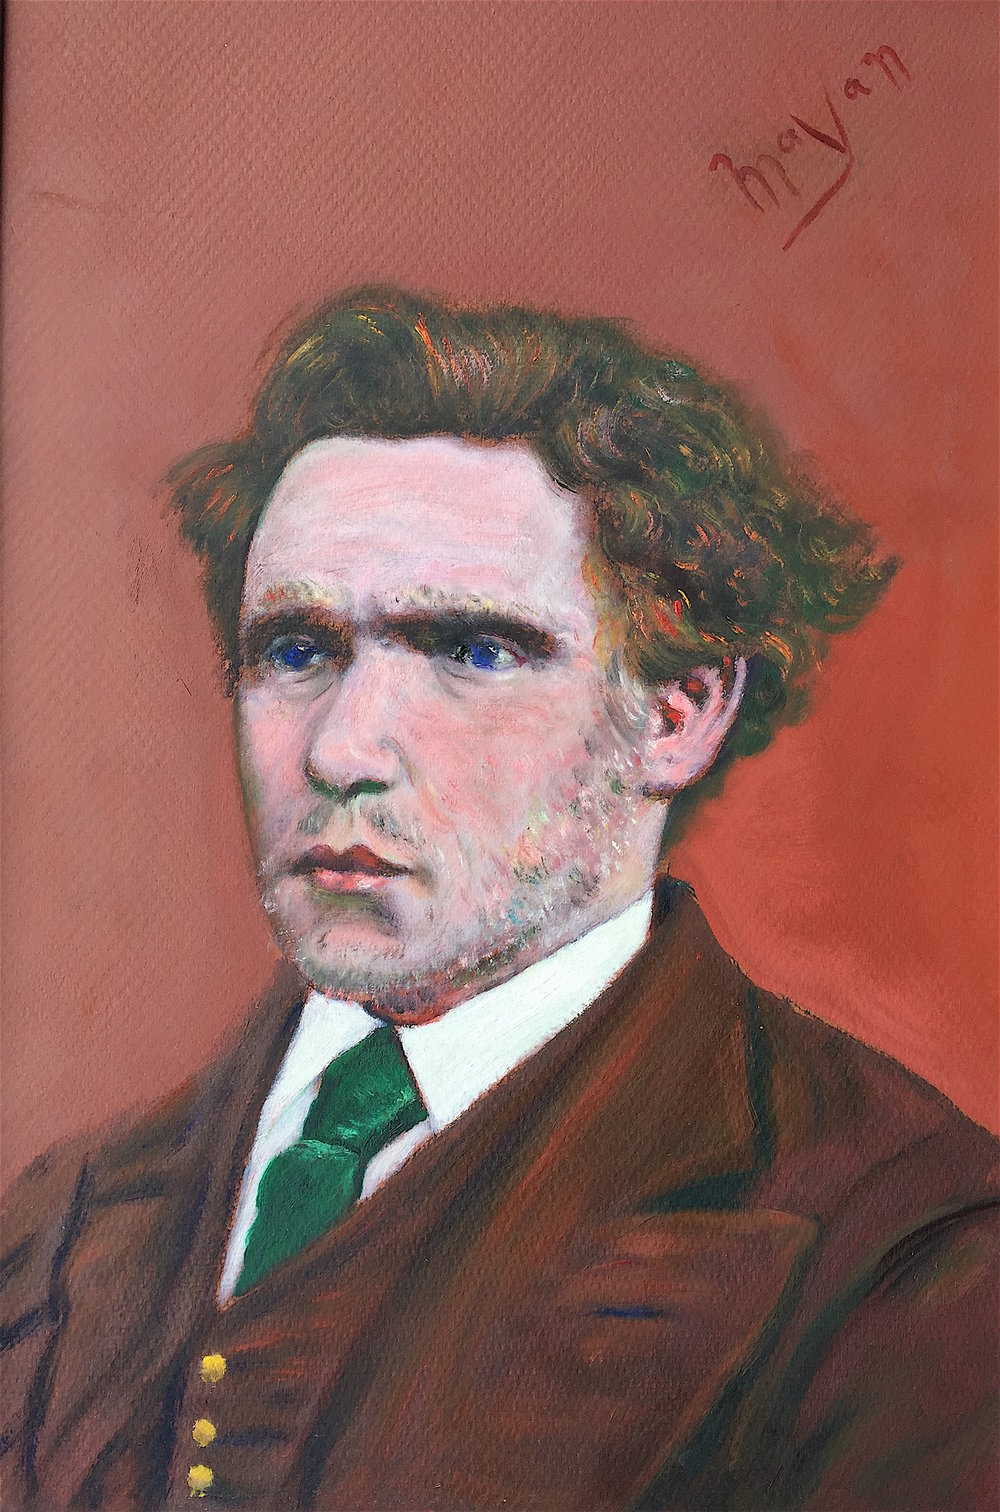 Van Gogh As A Young Man